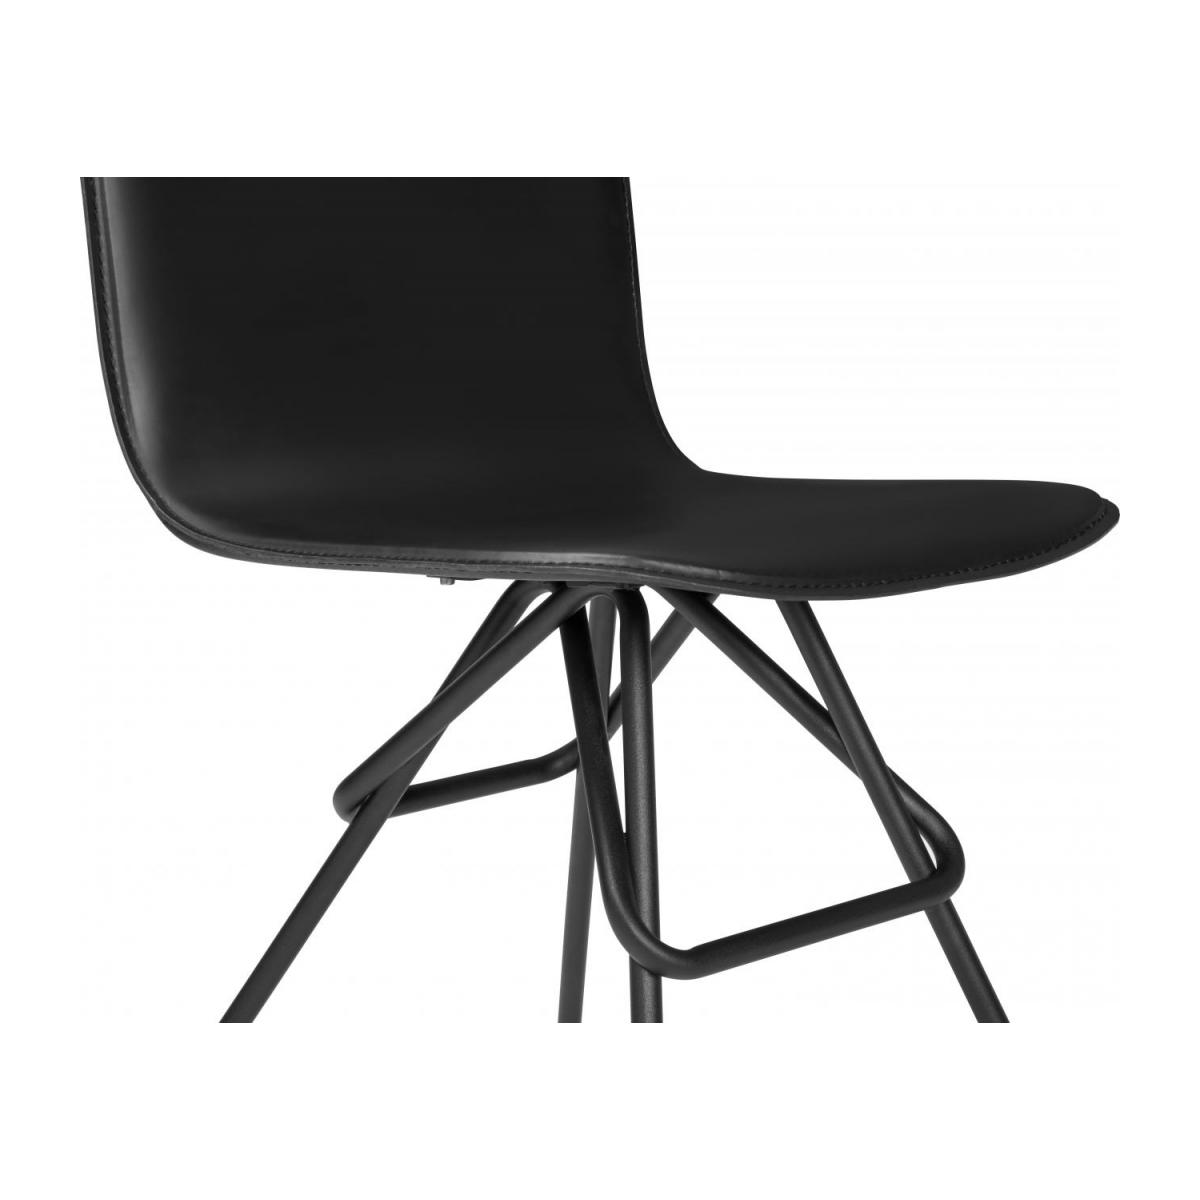 Chair with black faux leather cover and black steel legs n°5